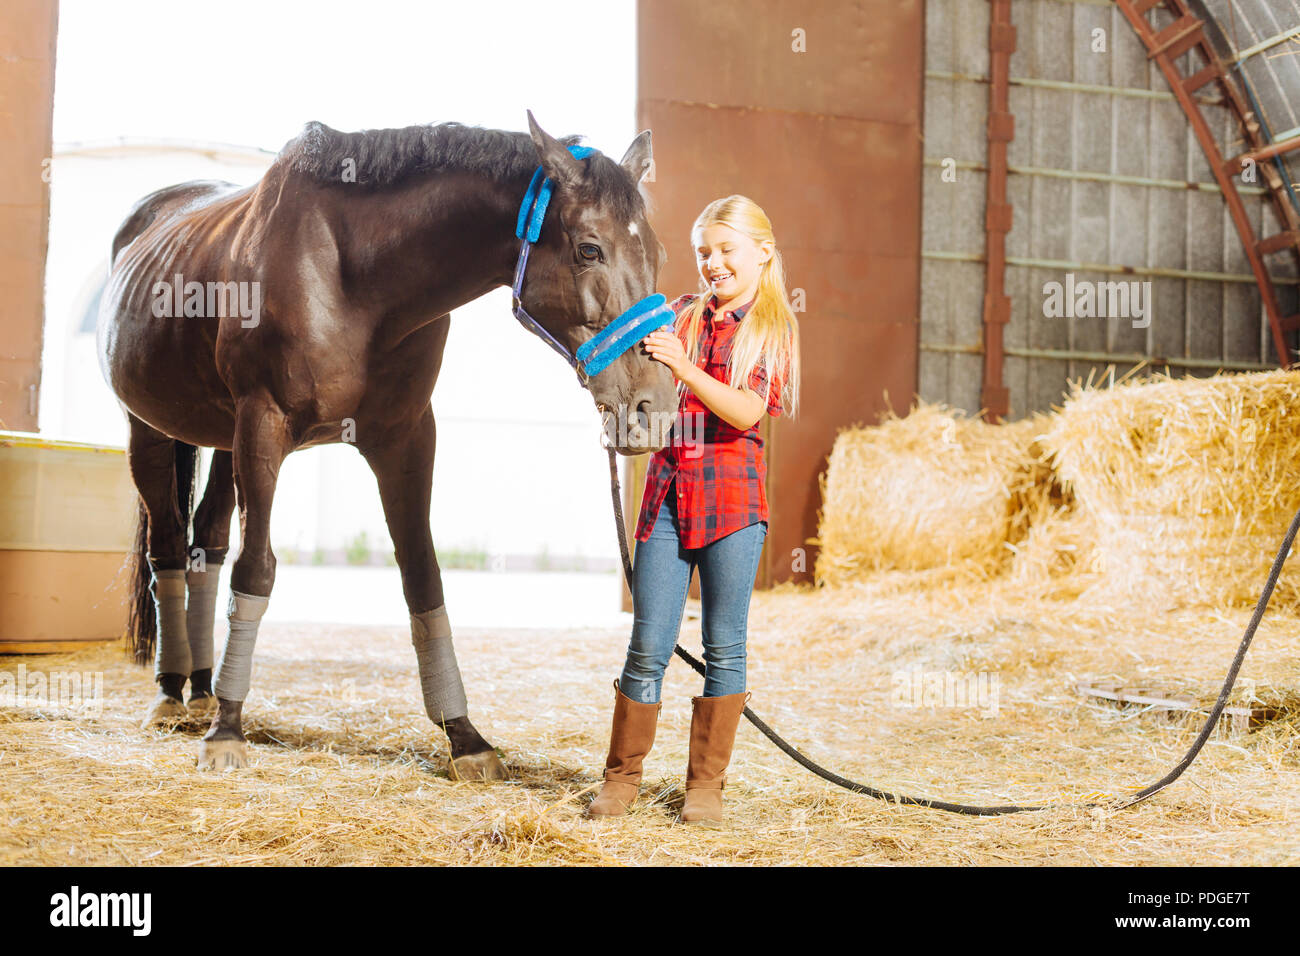 Schoolgirl laughing while playing with big dark horse - Stock Image